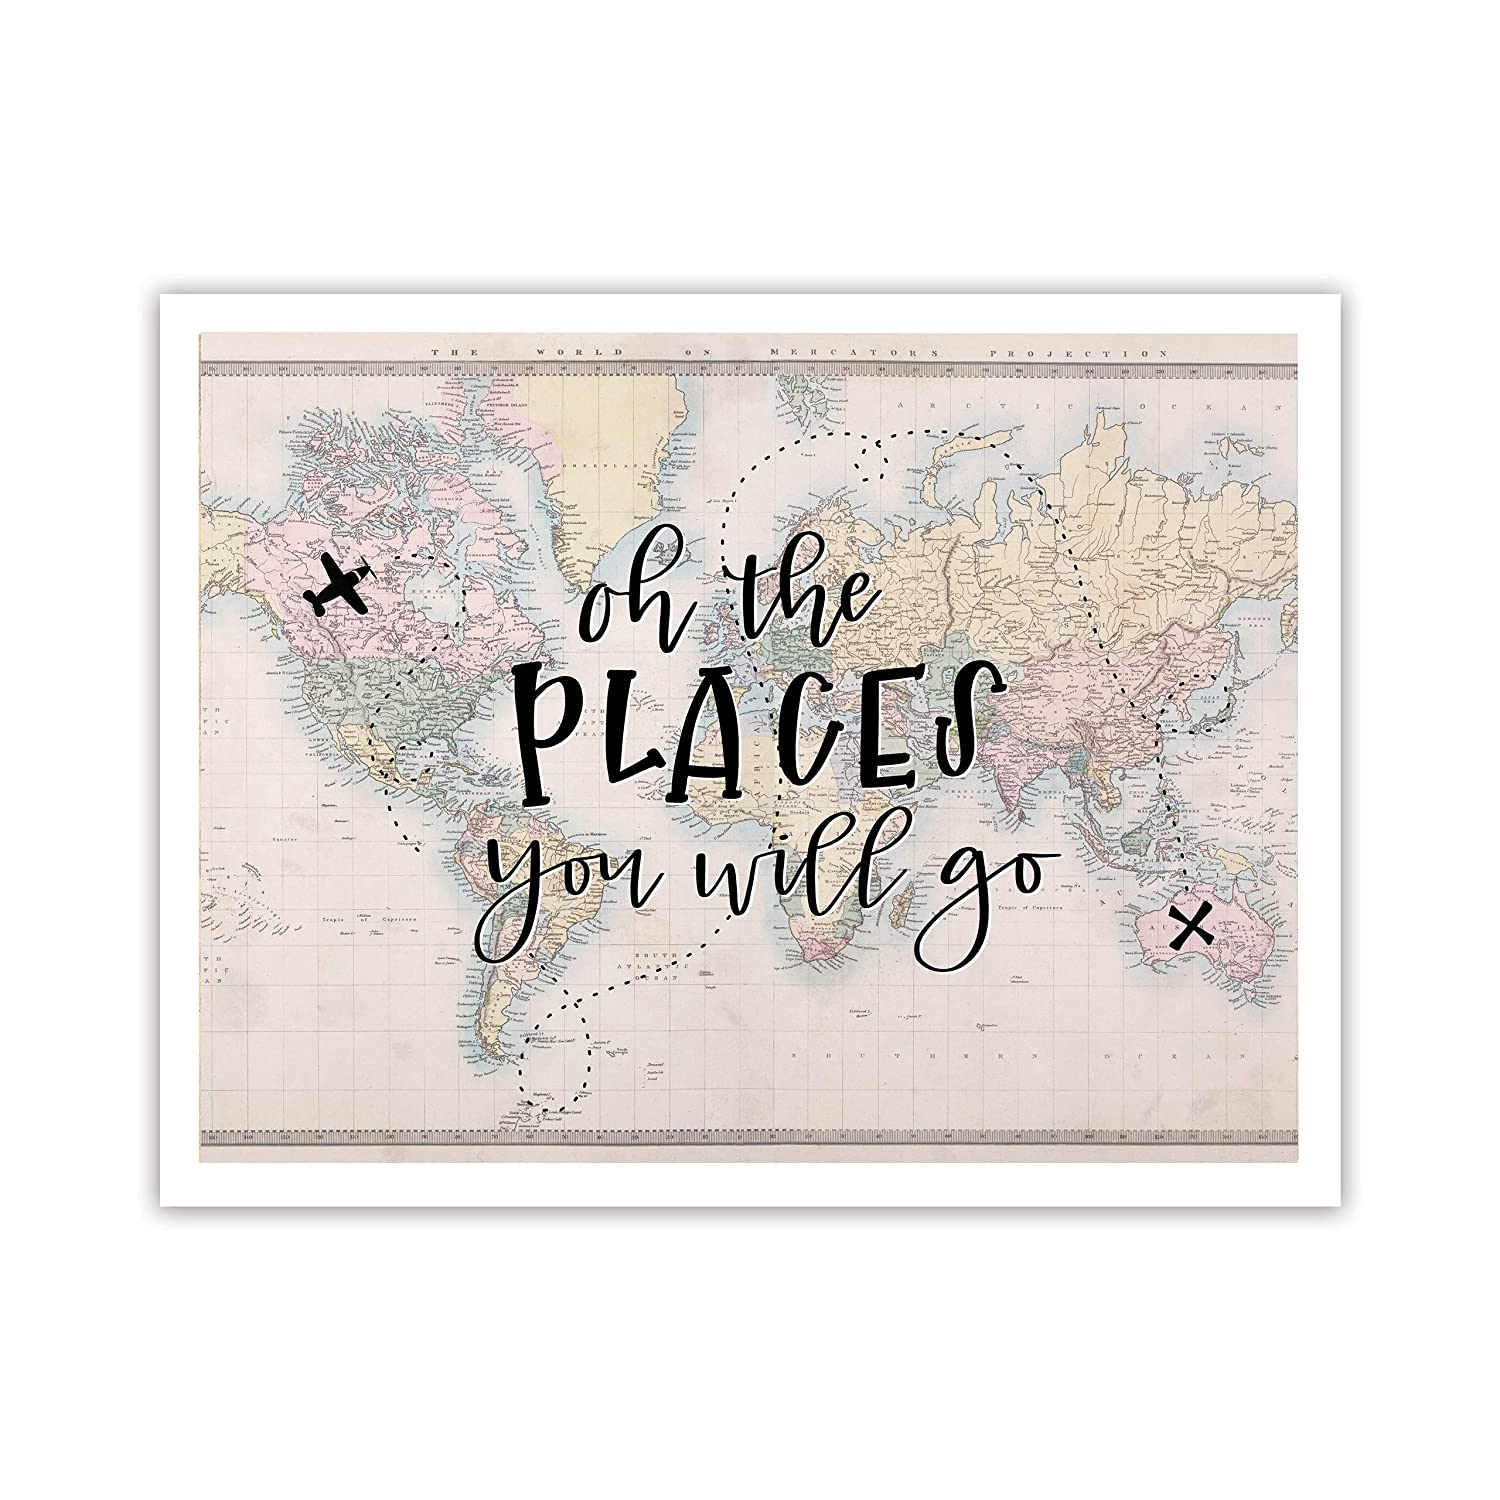 Handlettered Vintage Map Graphic Design Print 8.5 x11 ArtworkOh the places you will go